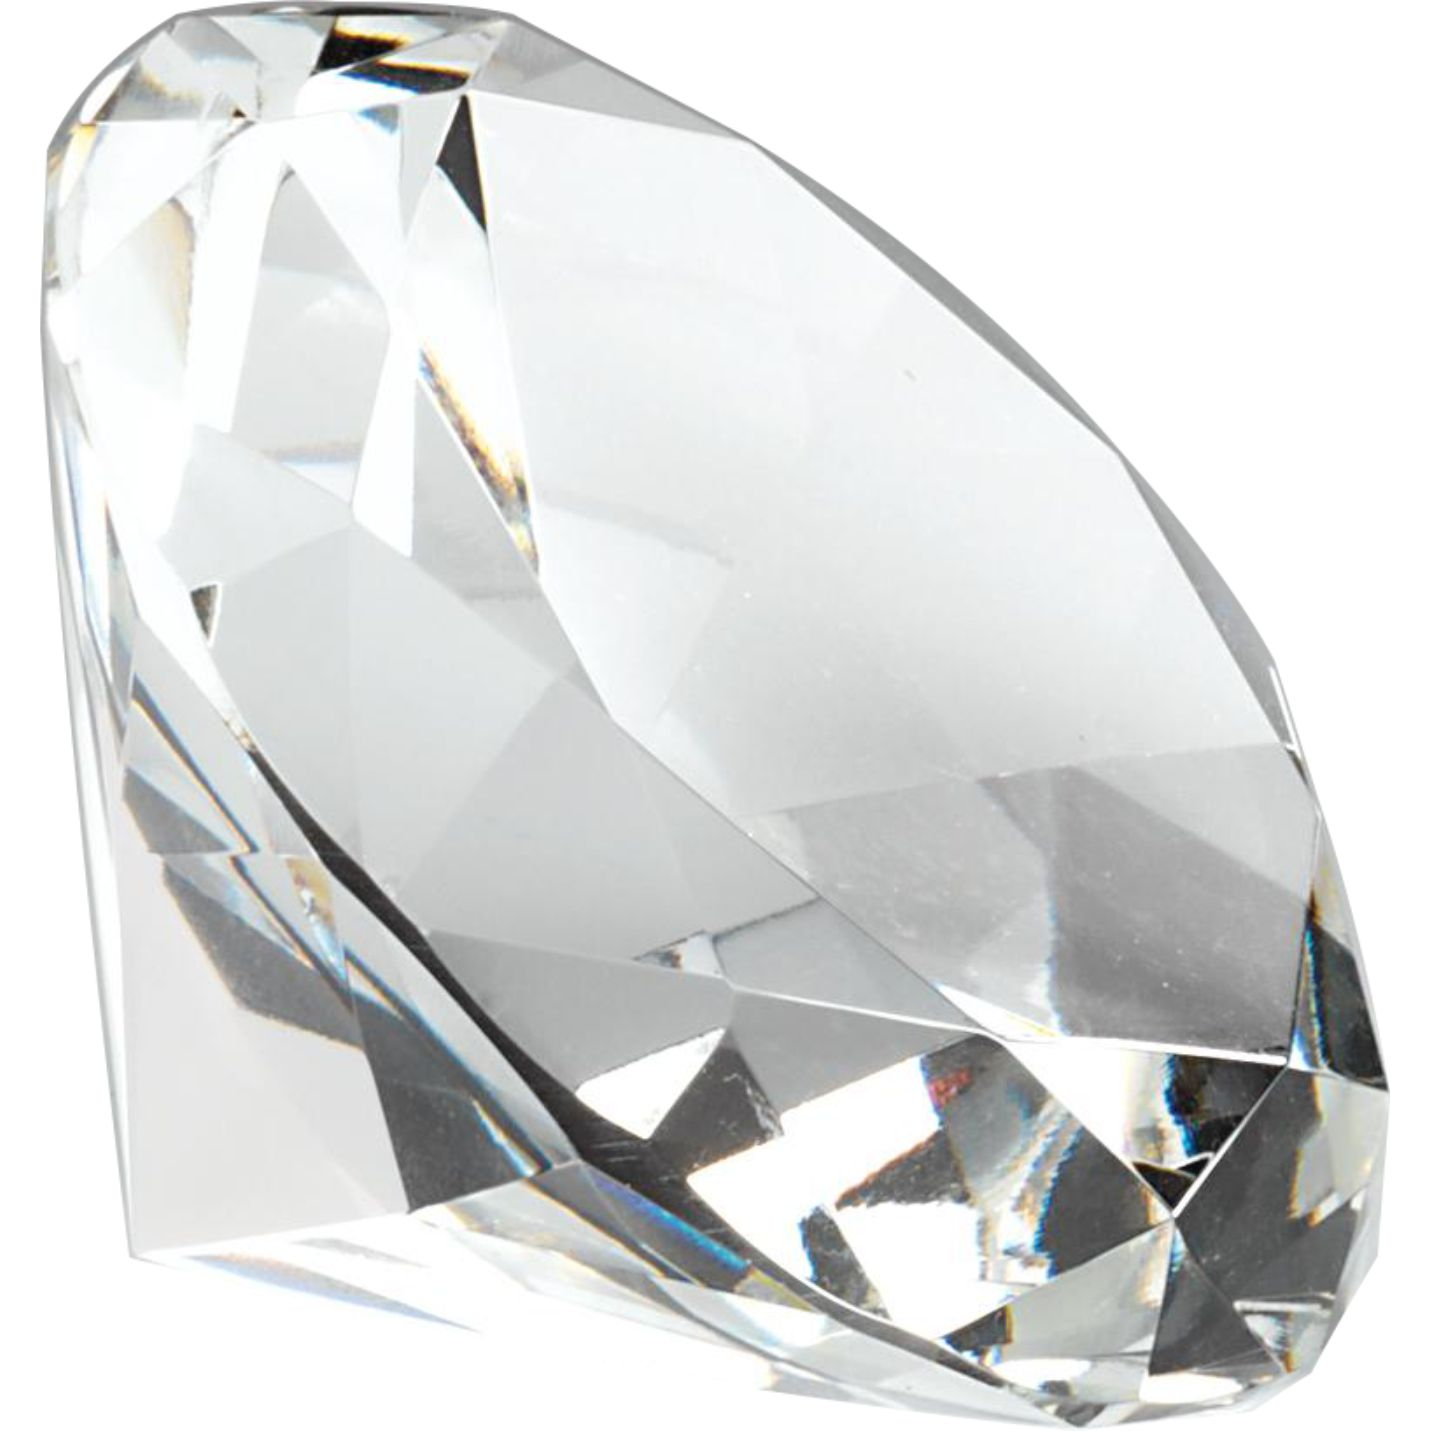 CC600 Crystal Diamond Paperweight Image